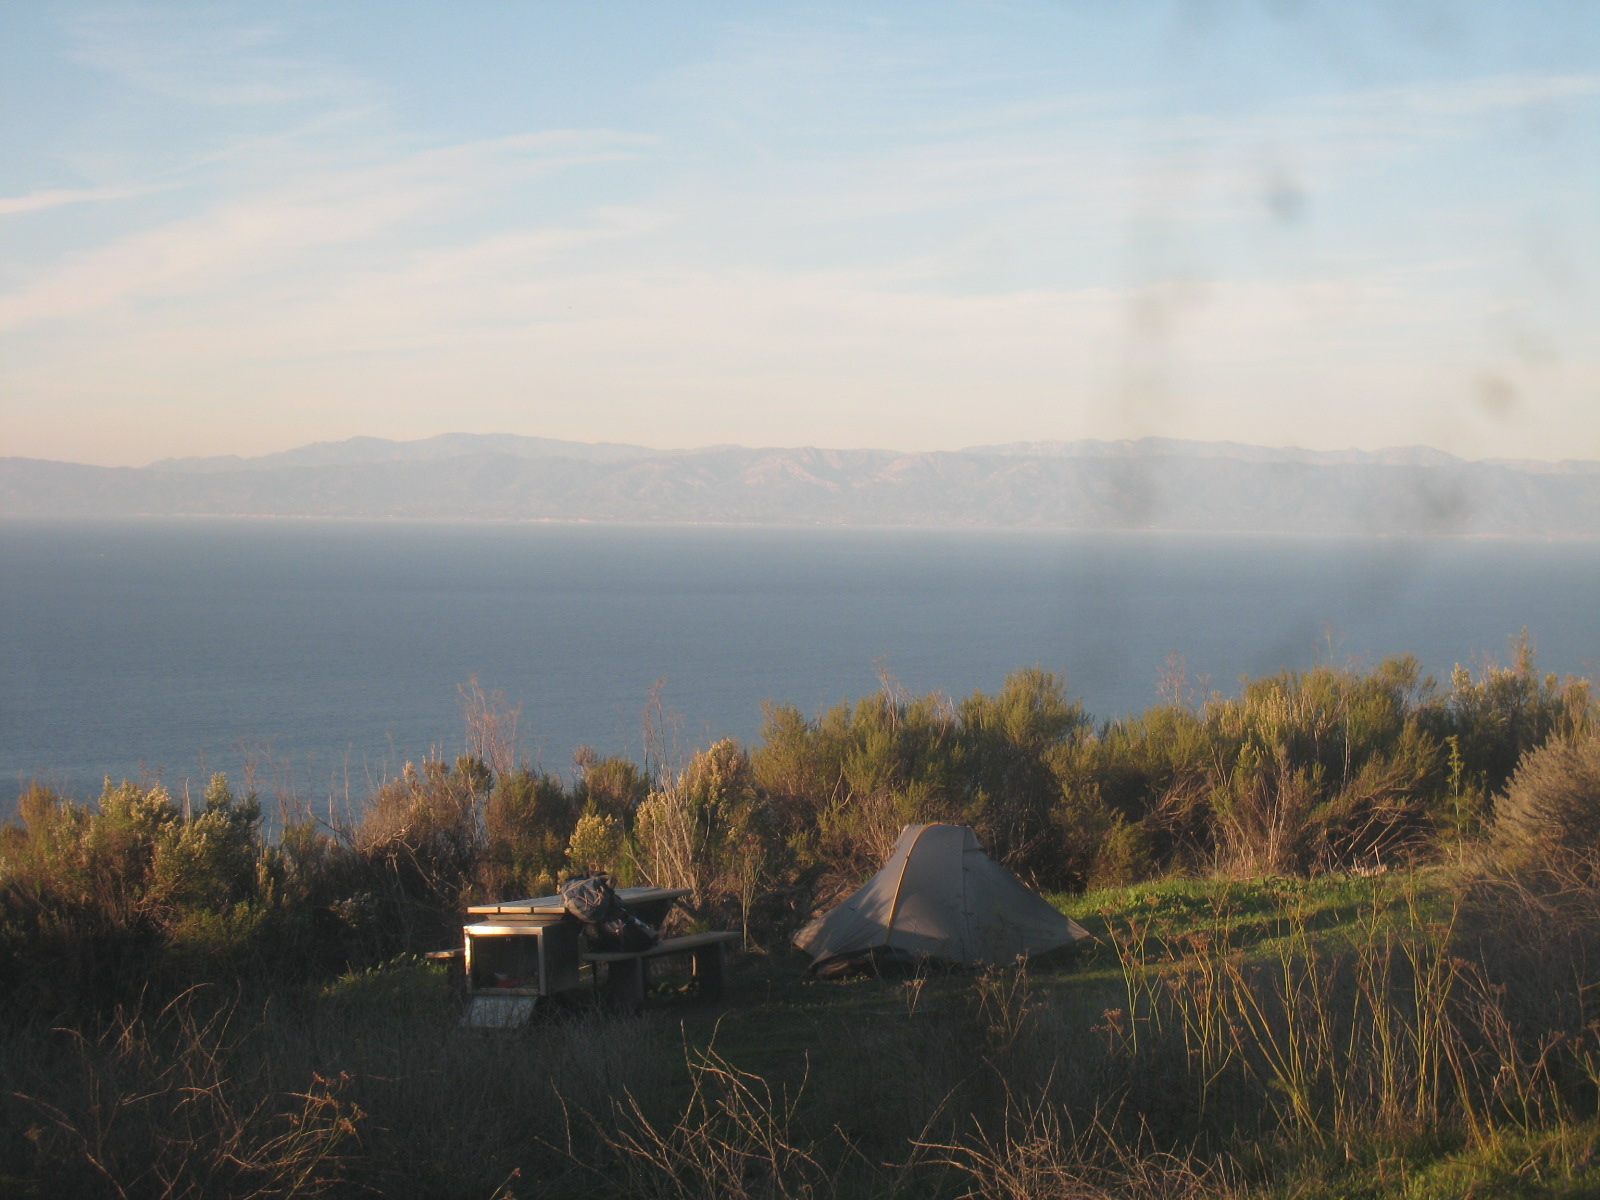 A view of the mainland from Del Norte Campground, Santa Cruz Island